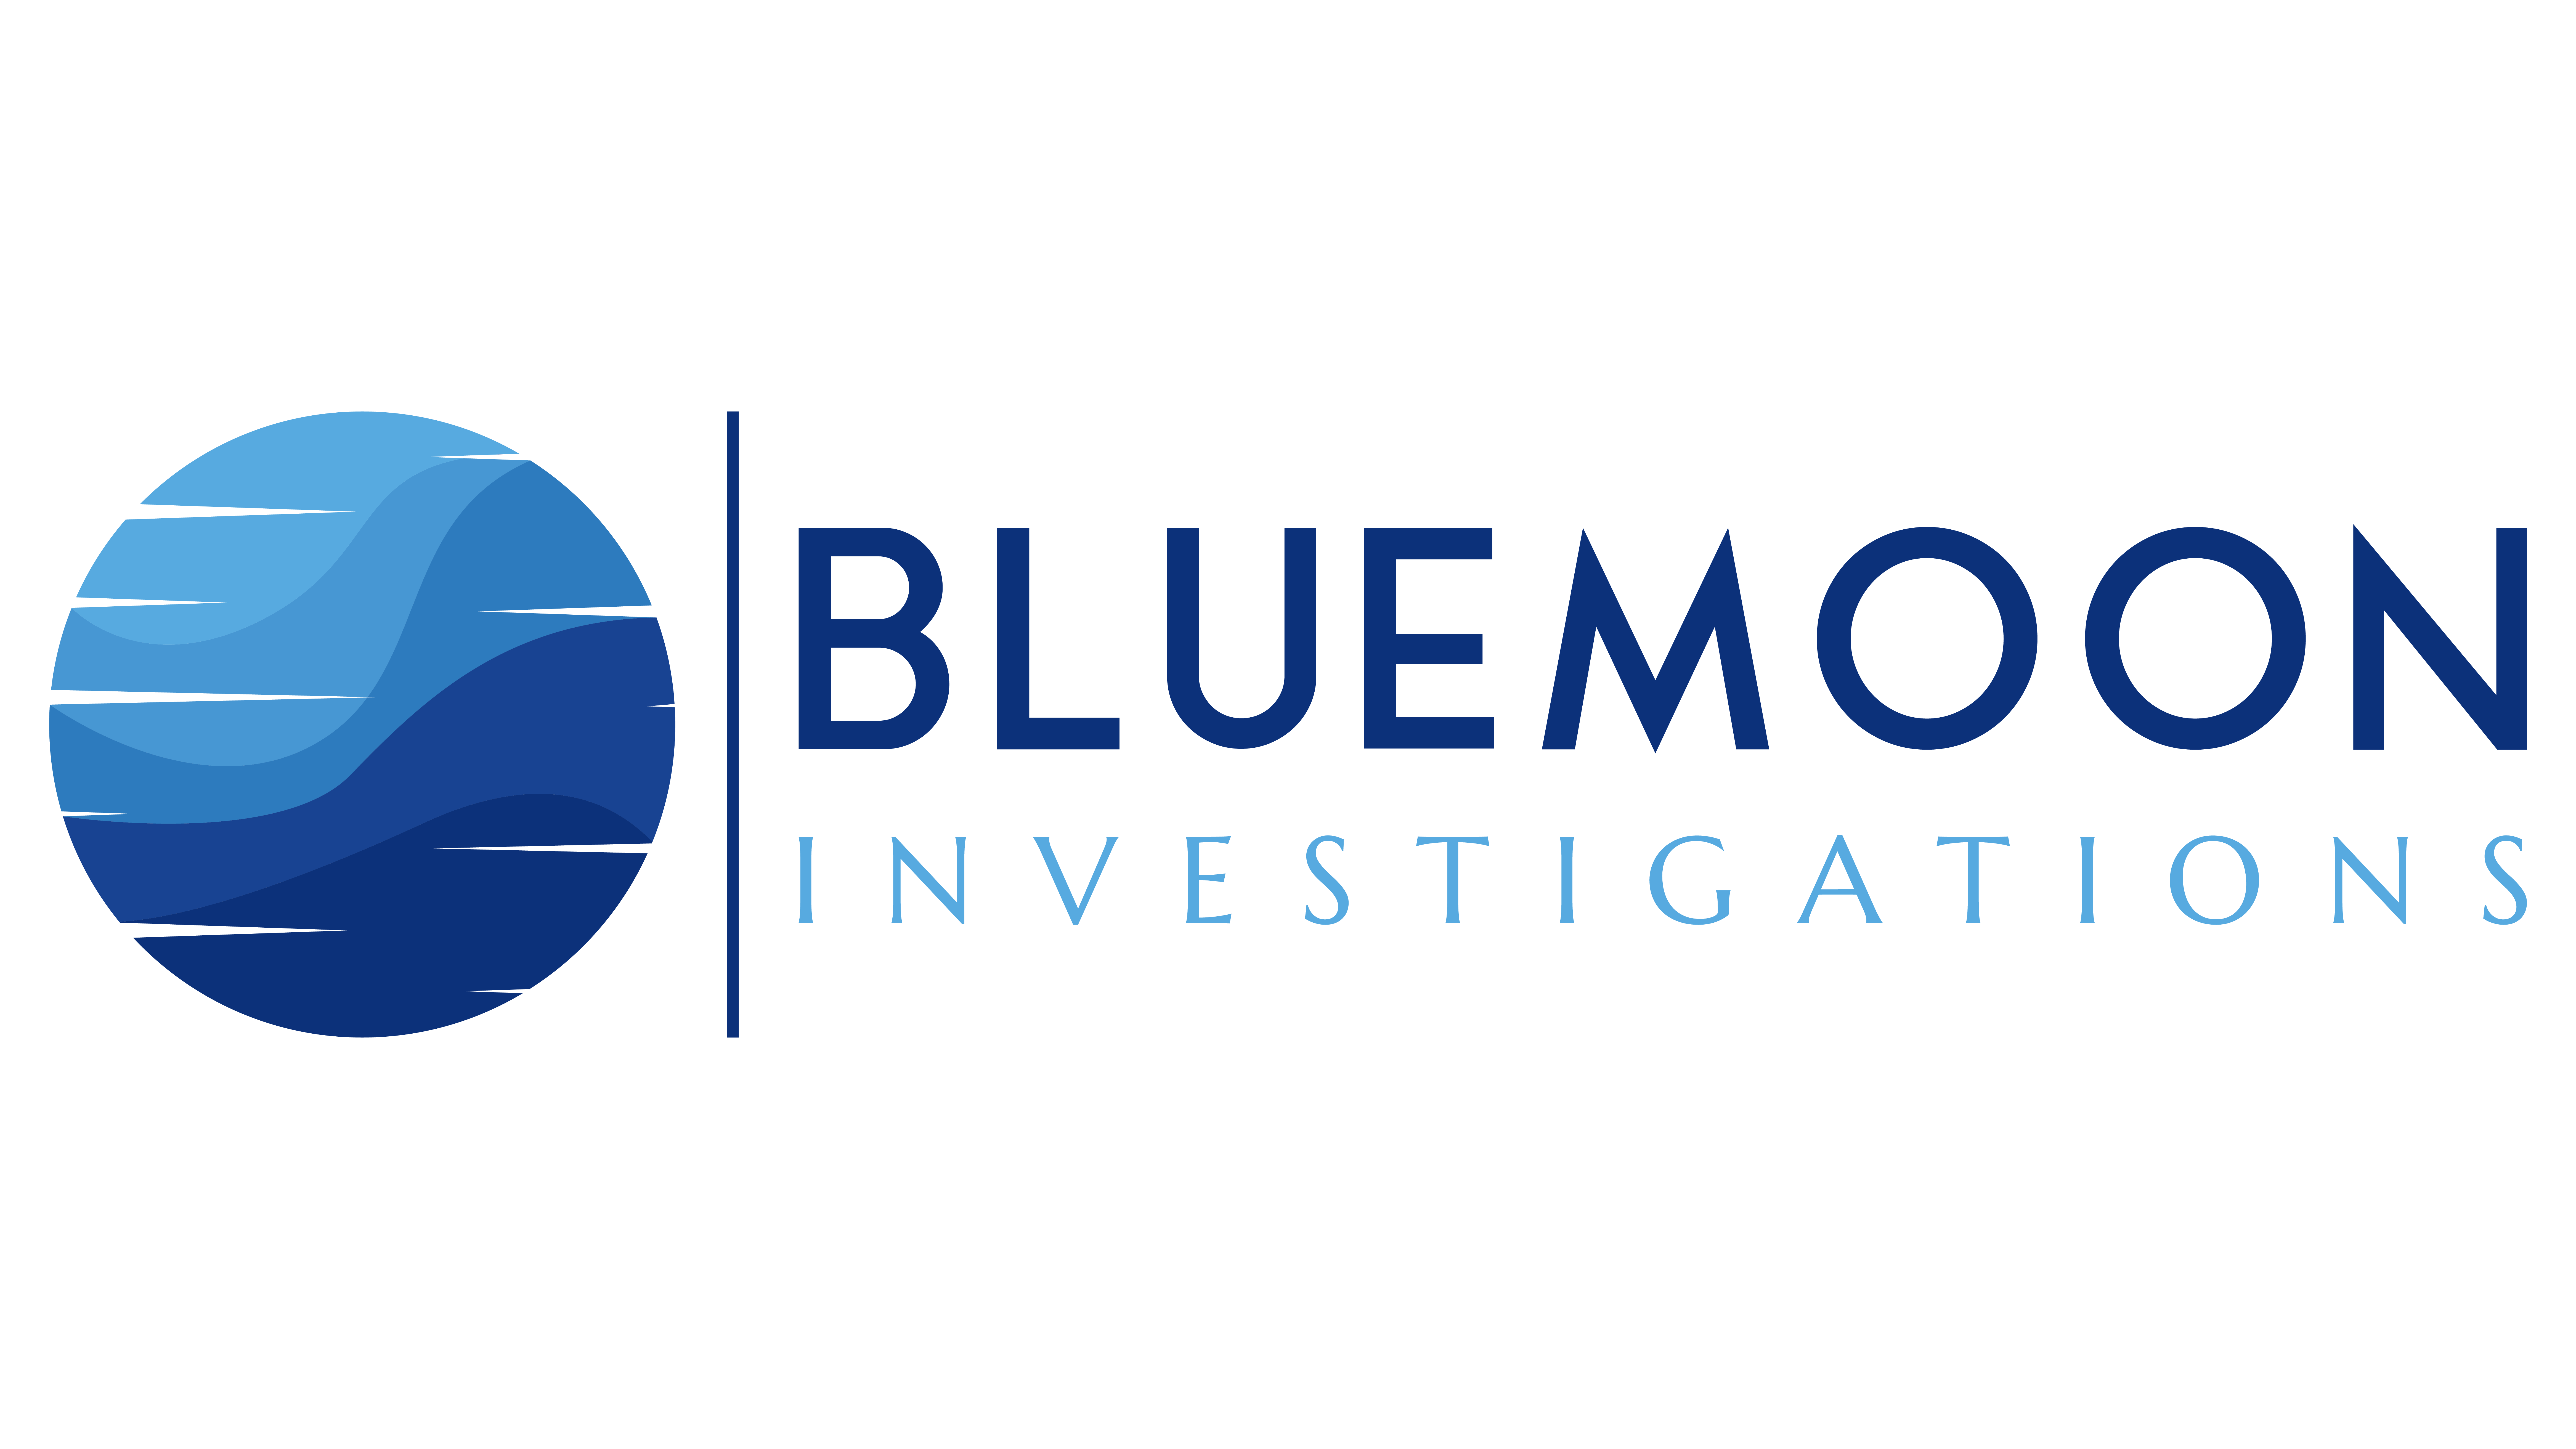 Bluemoon-Investigations